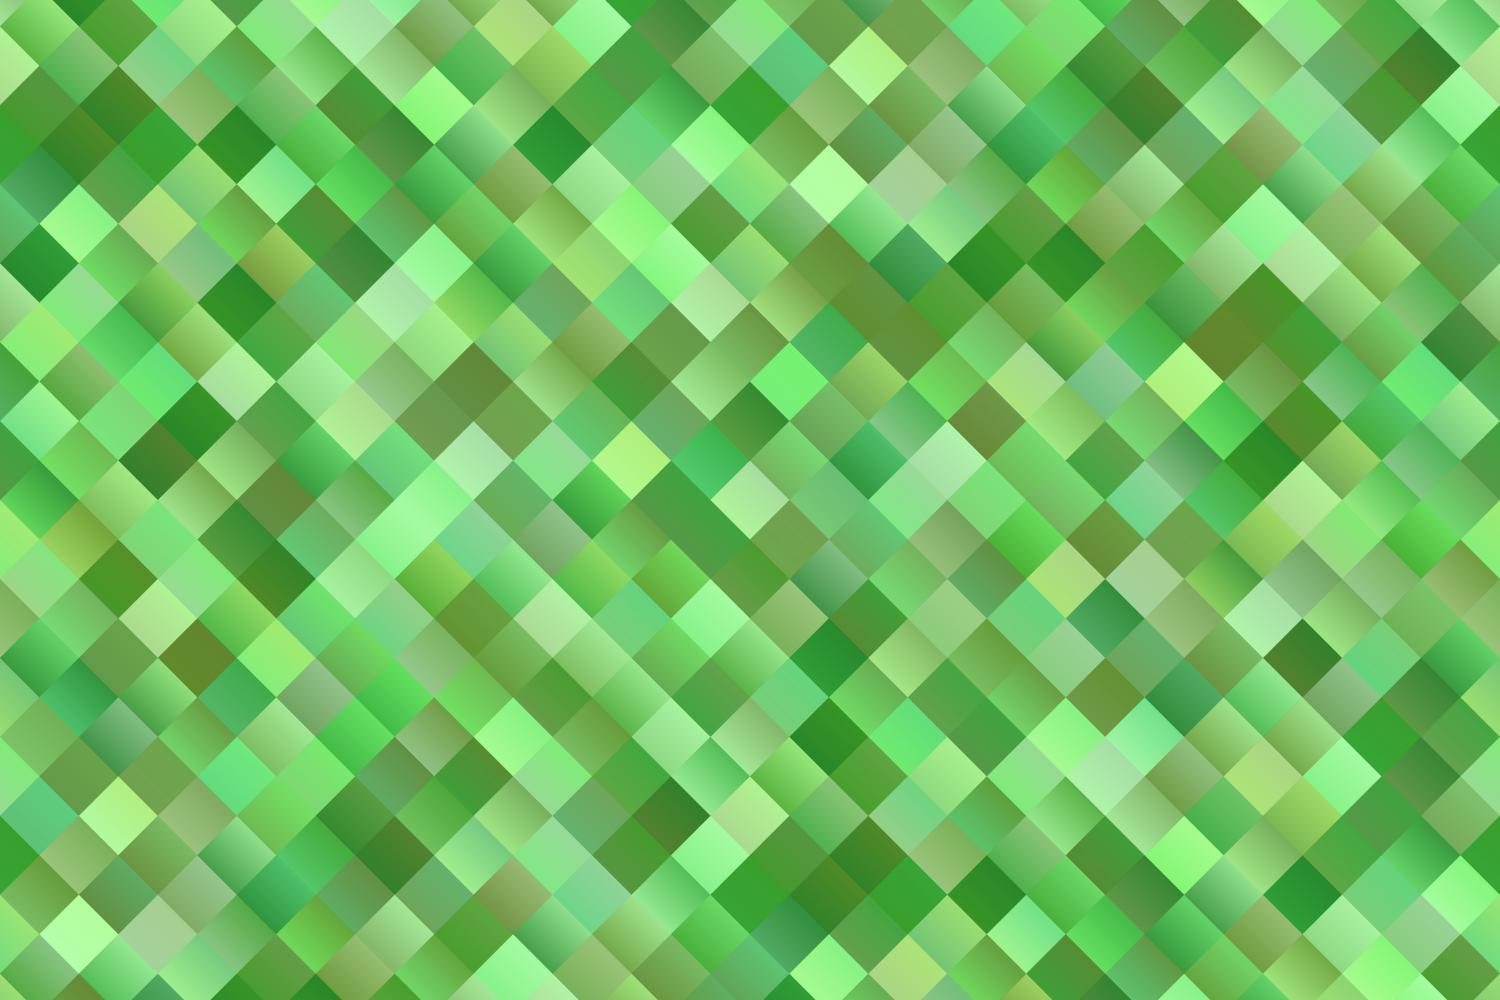 Download Free Green Seamless Gradient Square Pattern Graphic By Davidzydd for Cricut Explore, Silhouette and other cutting machines.